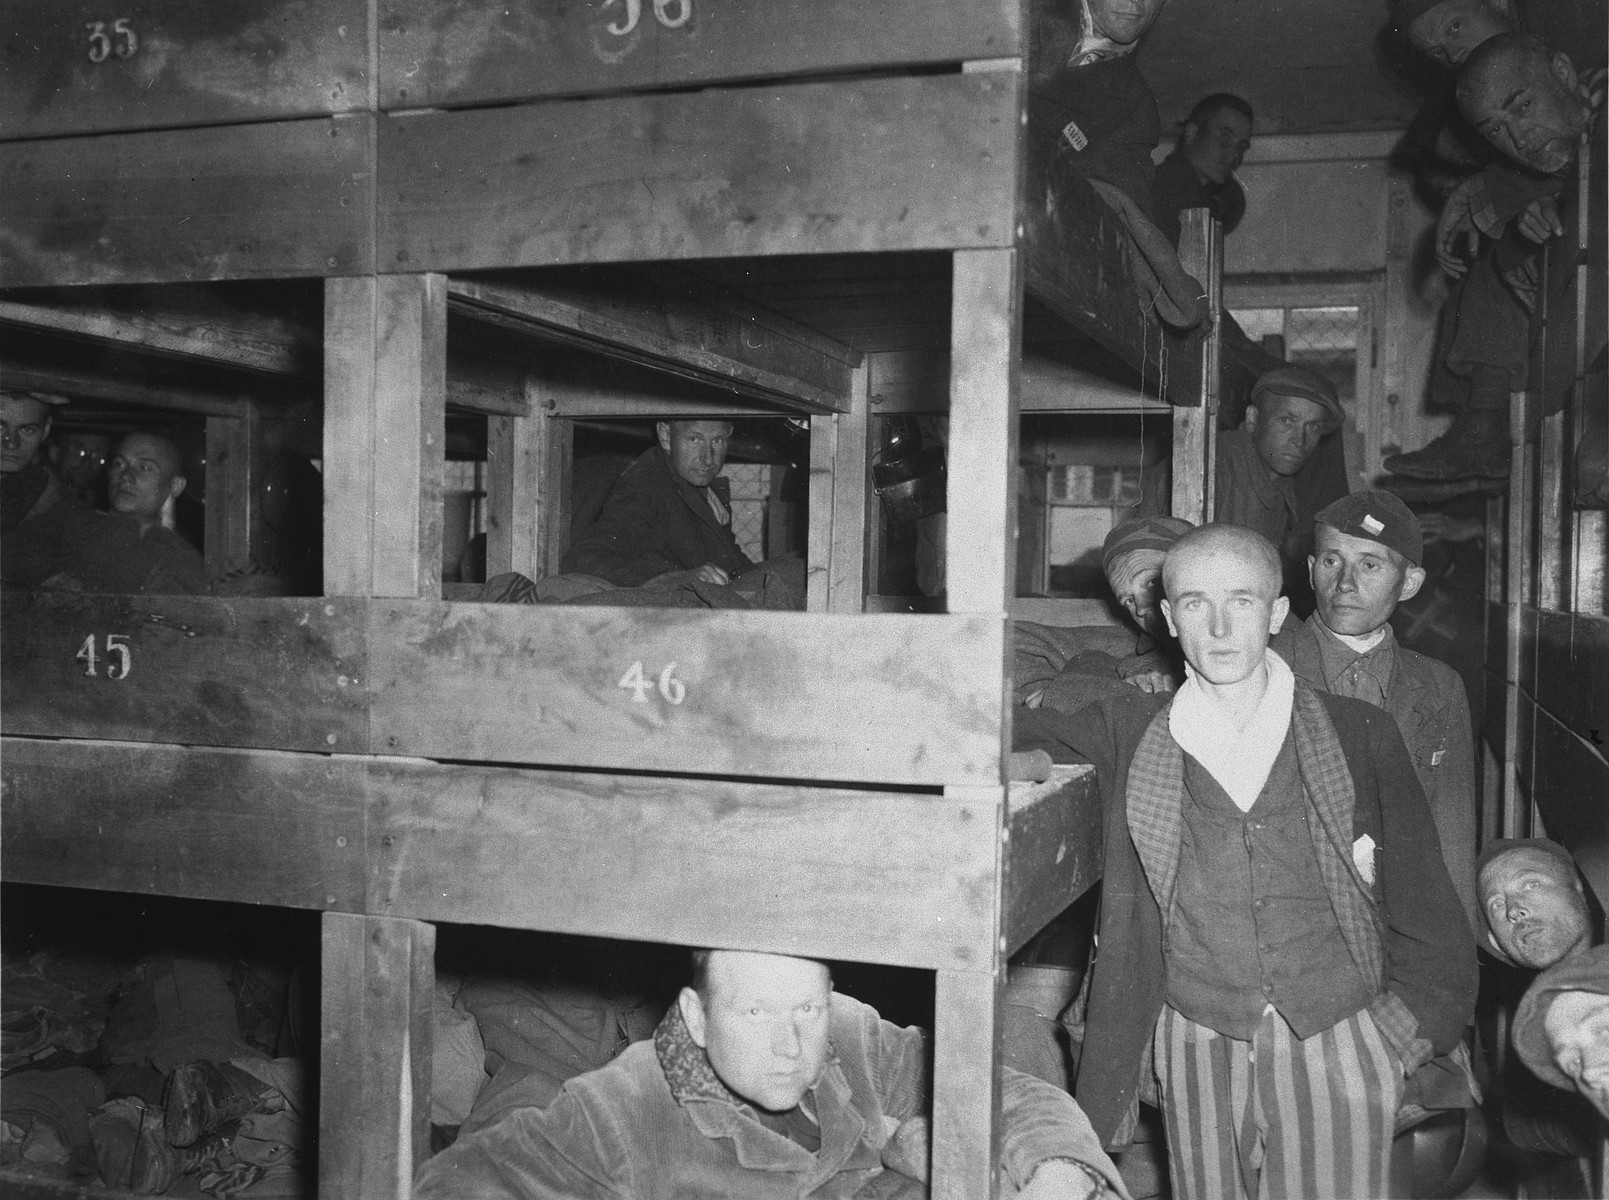 Survivors pose in and alongside their bunks in a barrack of the Dachau concentration camp.